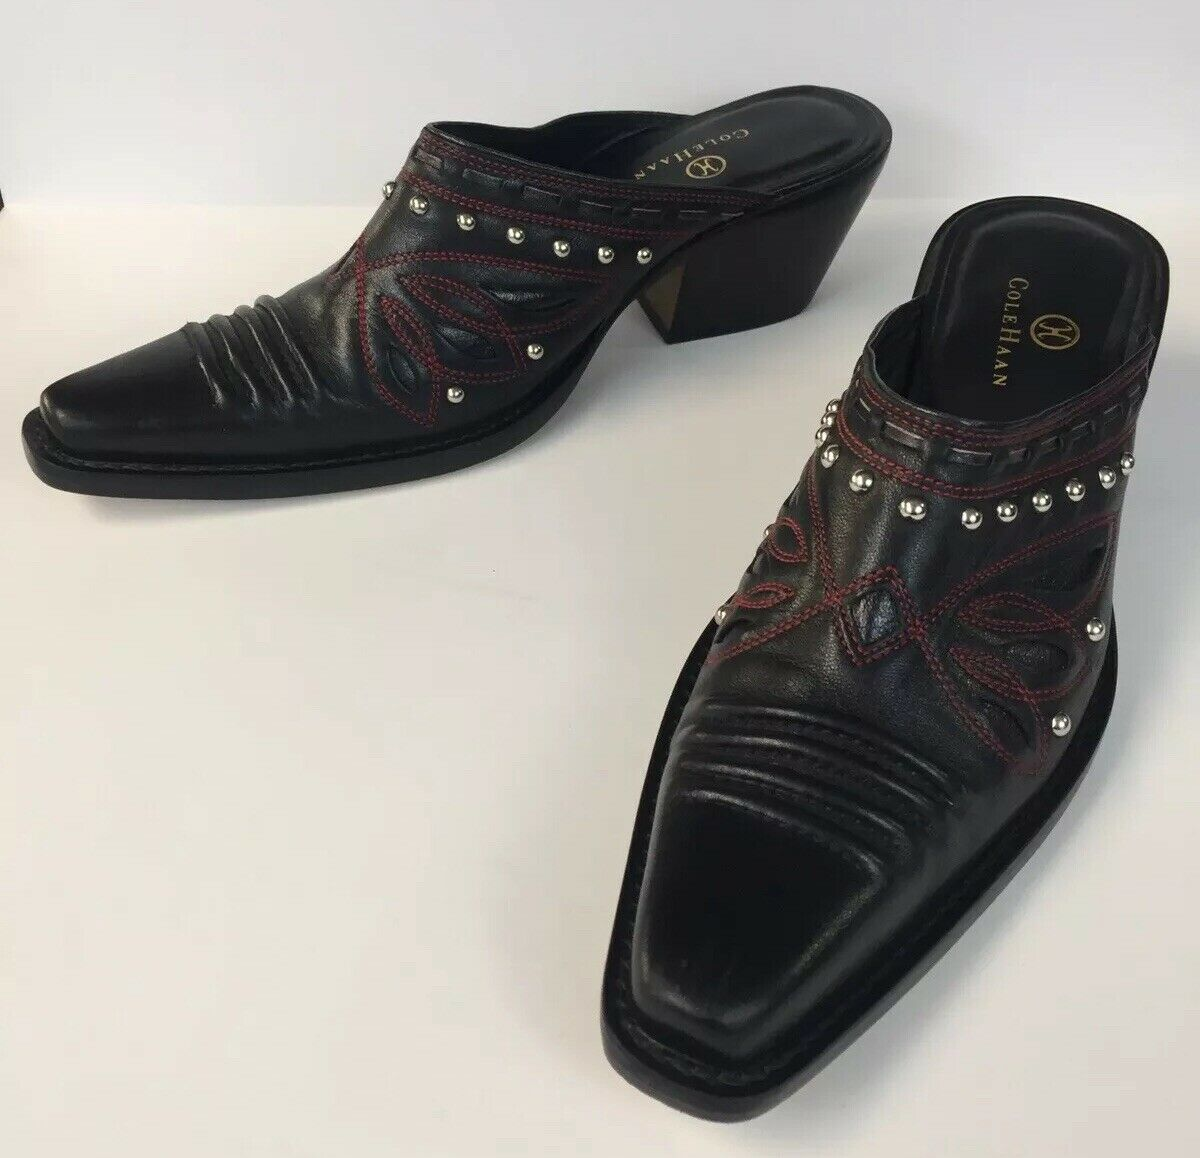 Cole Haan Western Pointy Toe Mules Black And Red With Studs Women's Boots 8.5 M